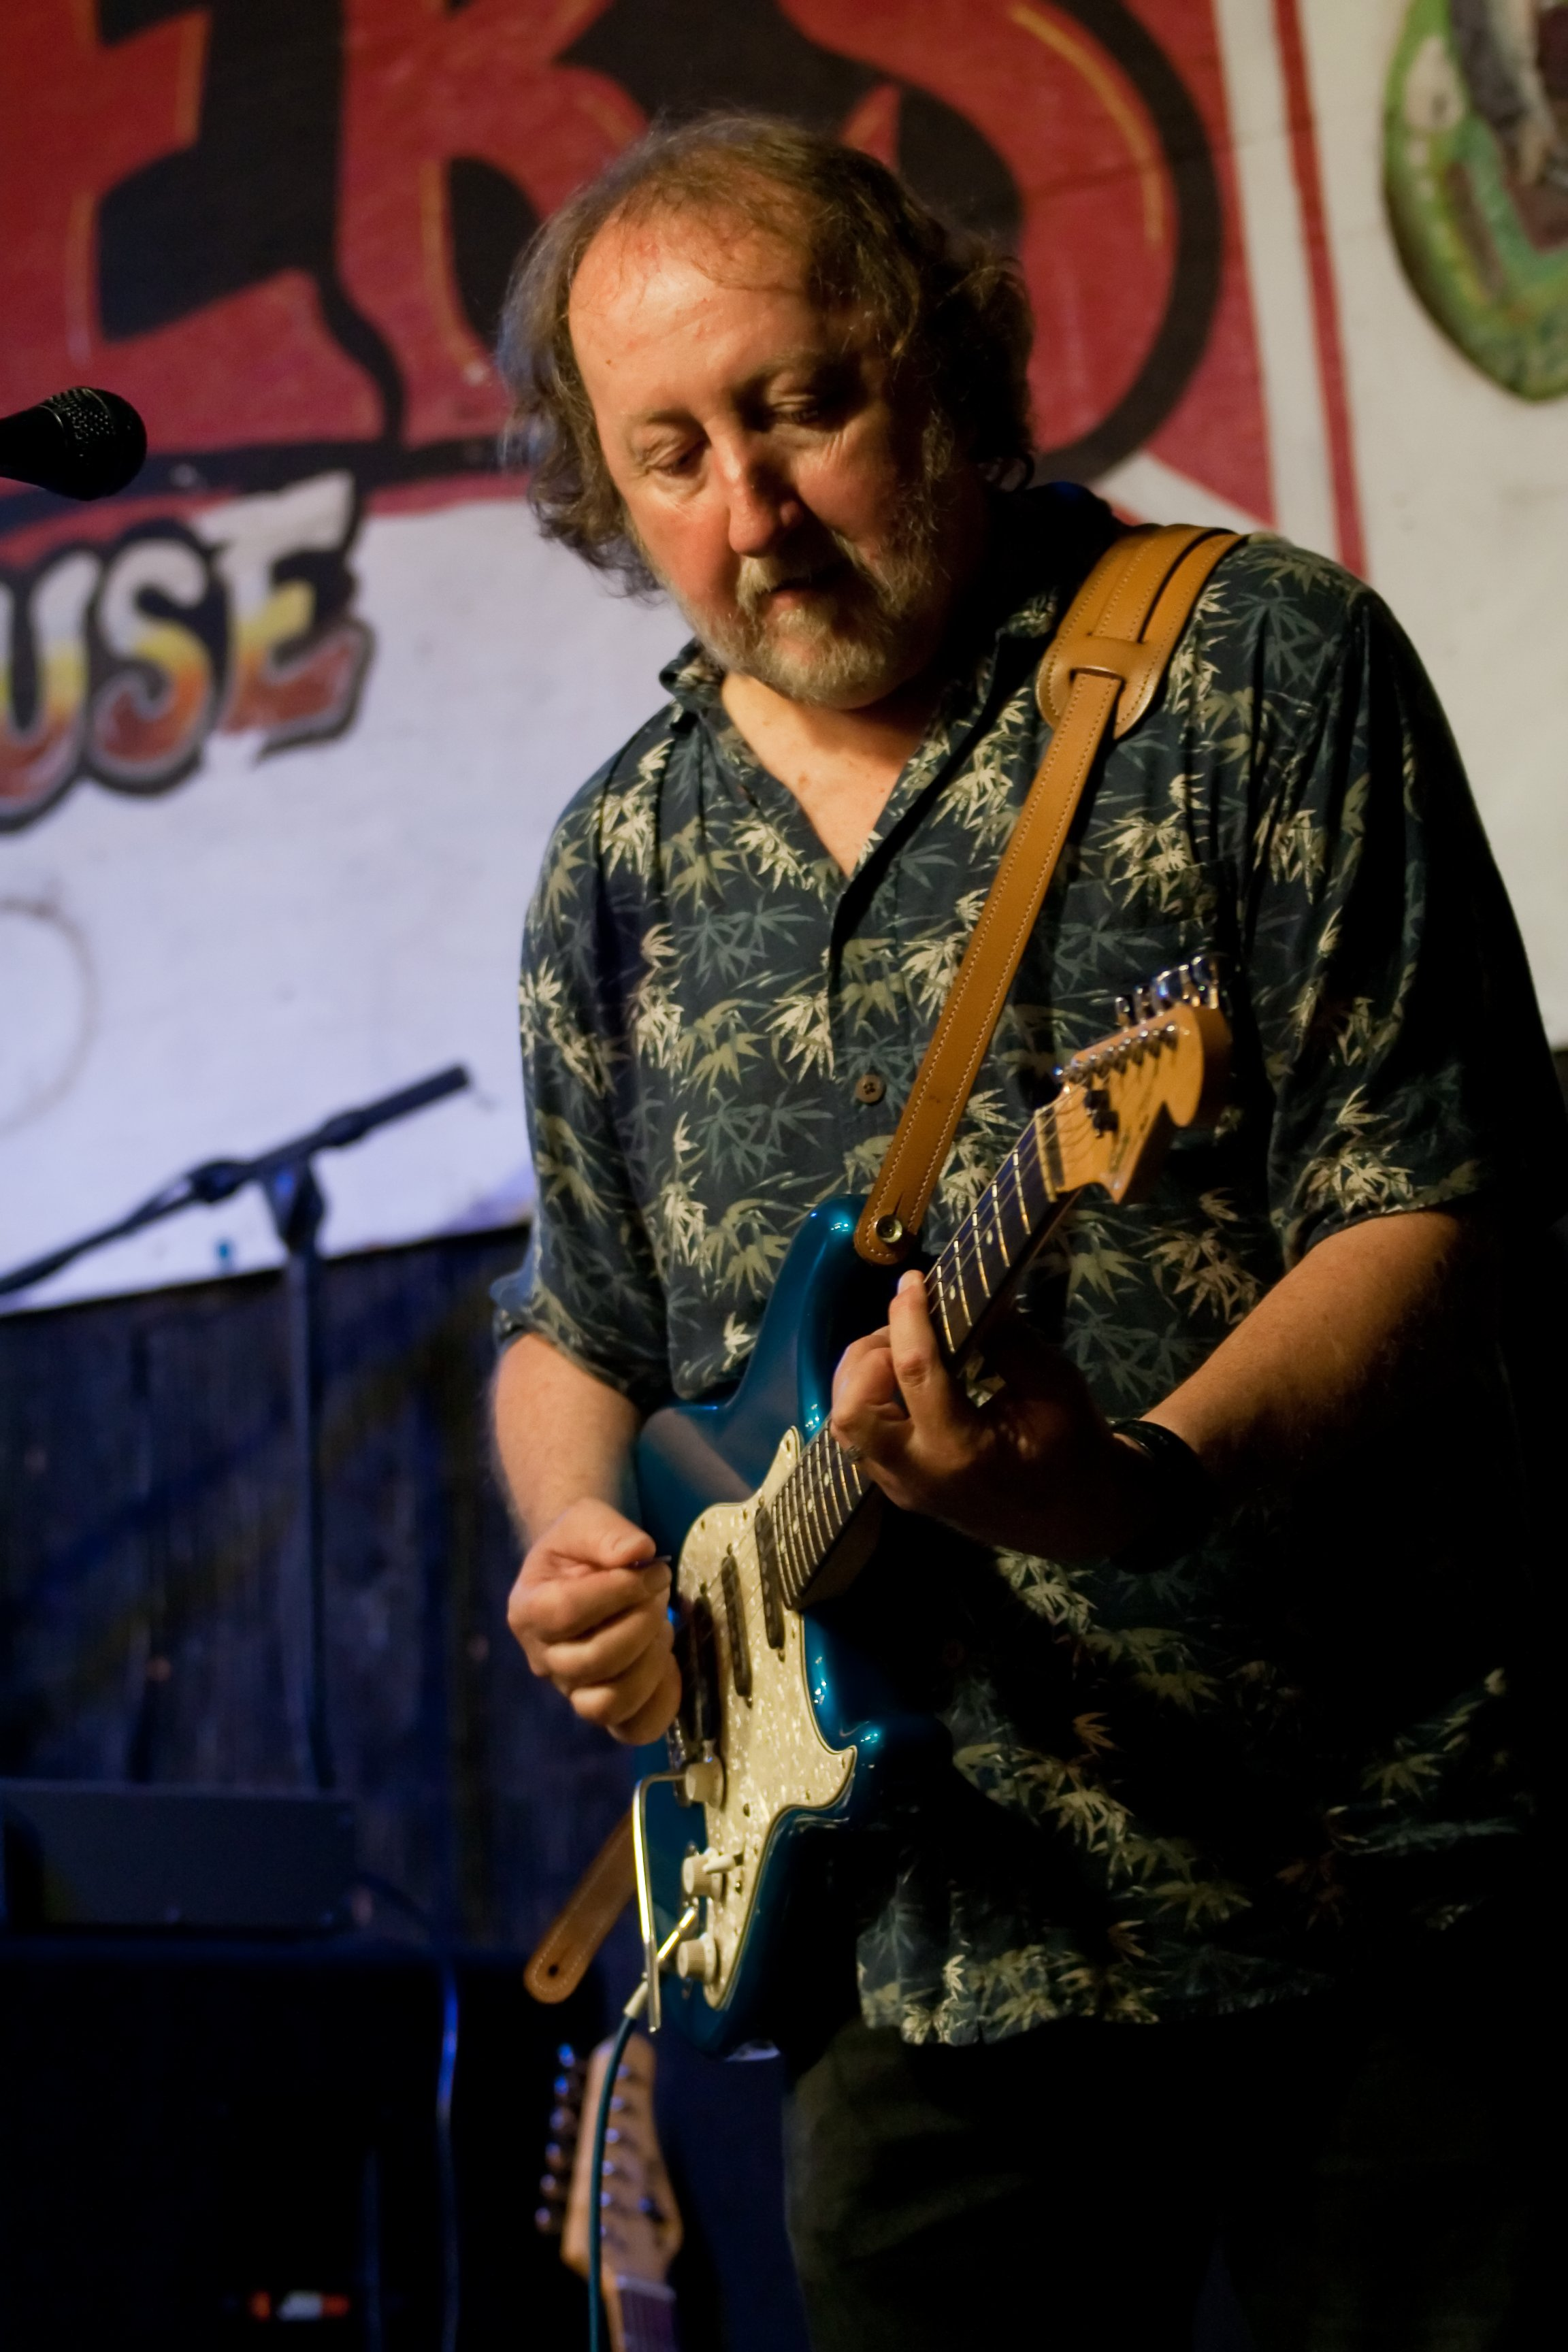 Roger Hughes on Guitar